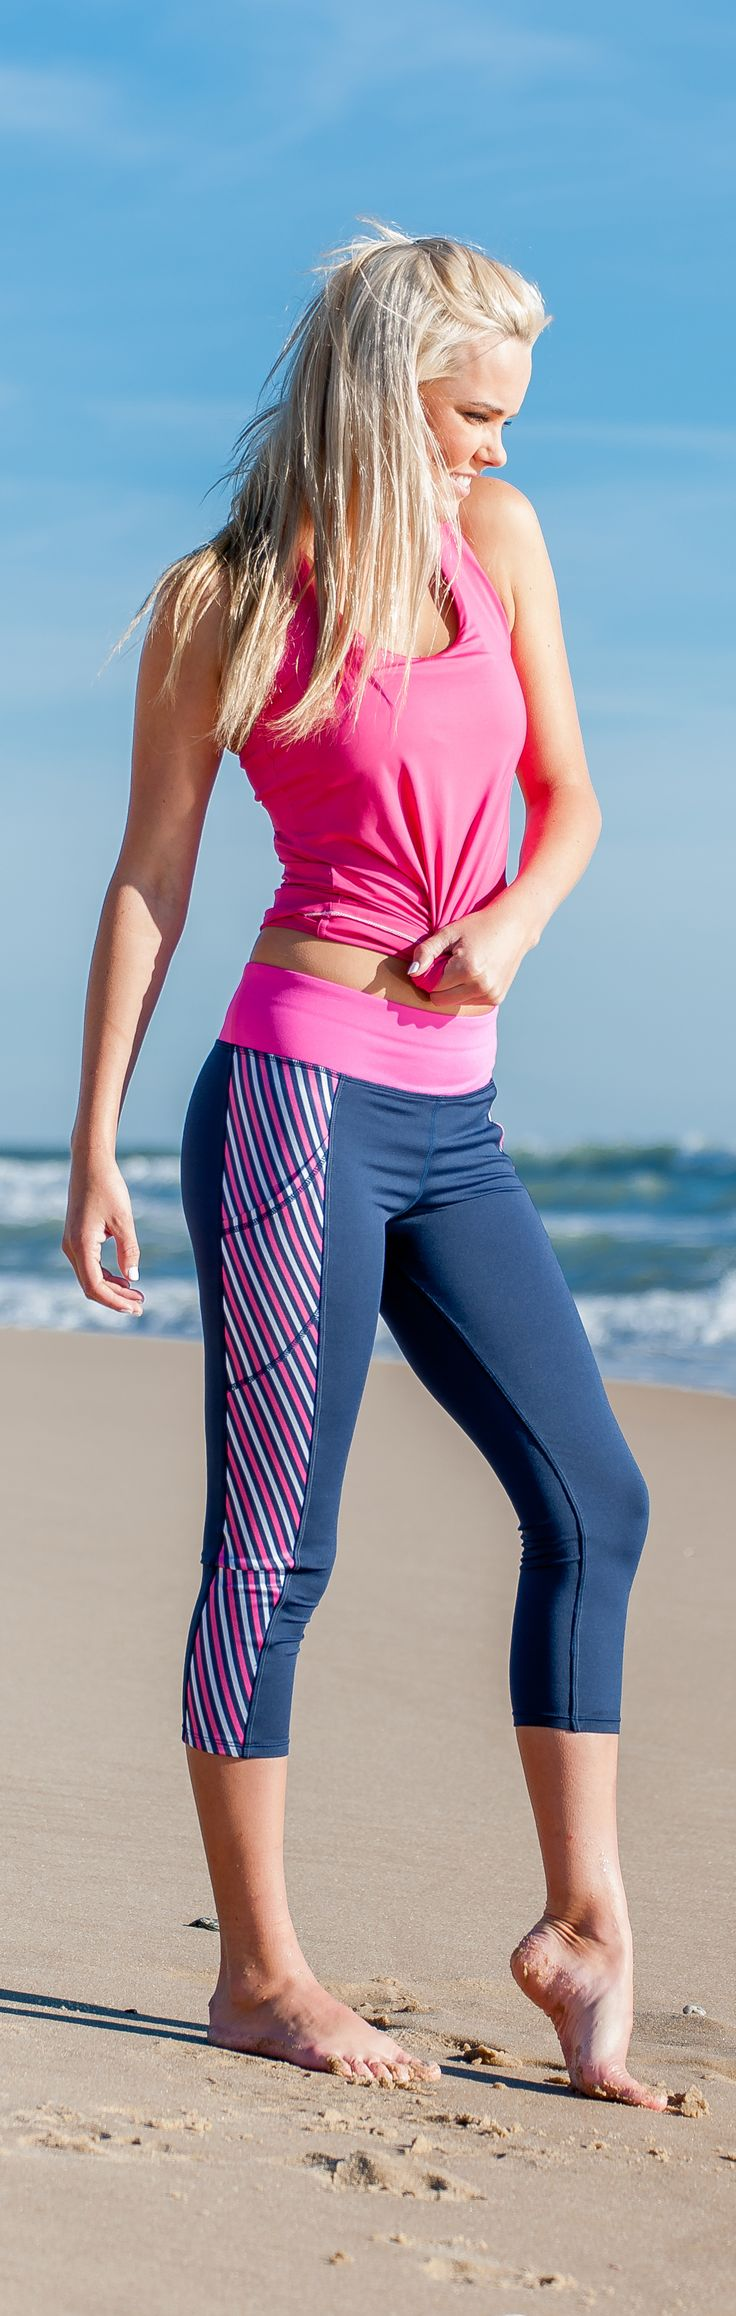 Yoga pants with pockets big enough to hold your phone? Yes please! Our bestselling navy & pink stripe capris are not just the cutest around, but also super-functional. The TWO big side pockets can hold keys, money, iPods, phones - you name it! Shop them now at devonmaryn.com.